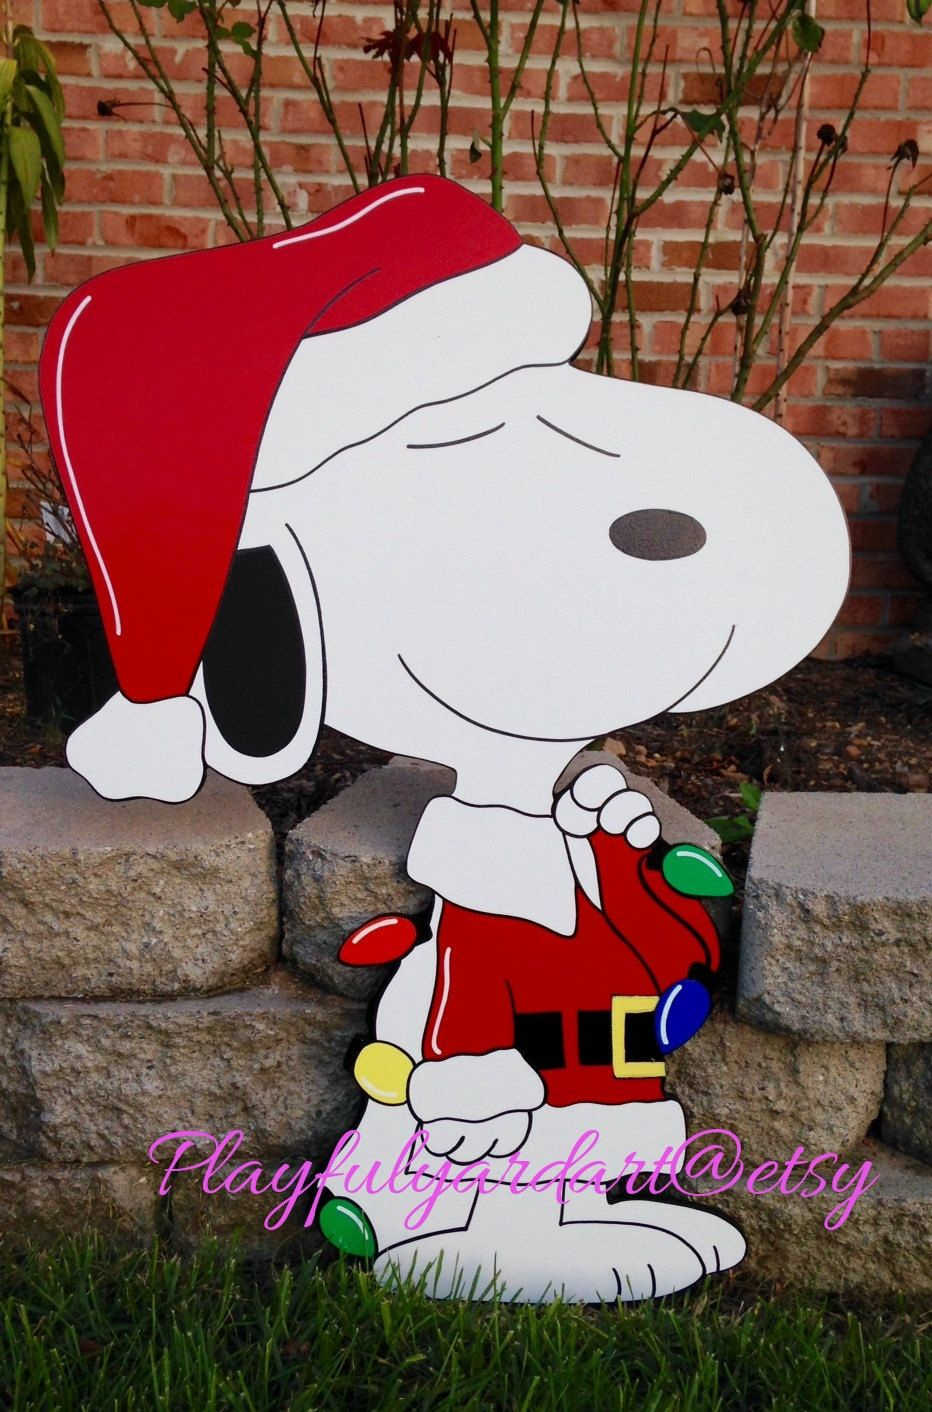 peanuts charlie brown snoopy christmas yard art decorations - Snoopy Christmas Yard Decorations